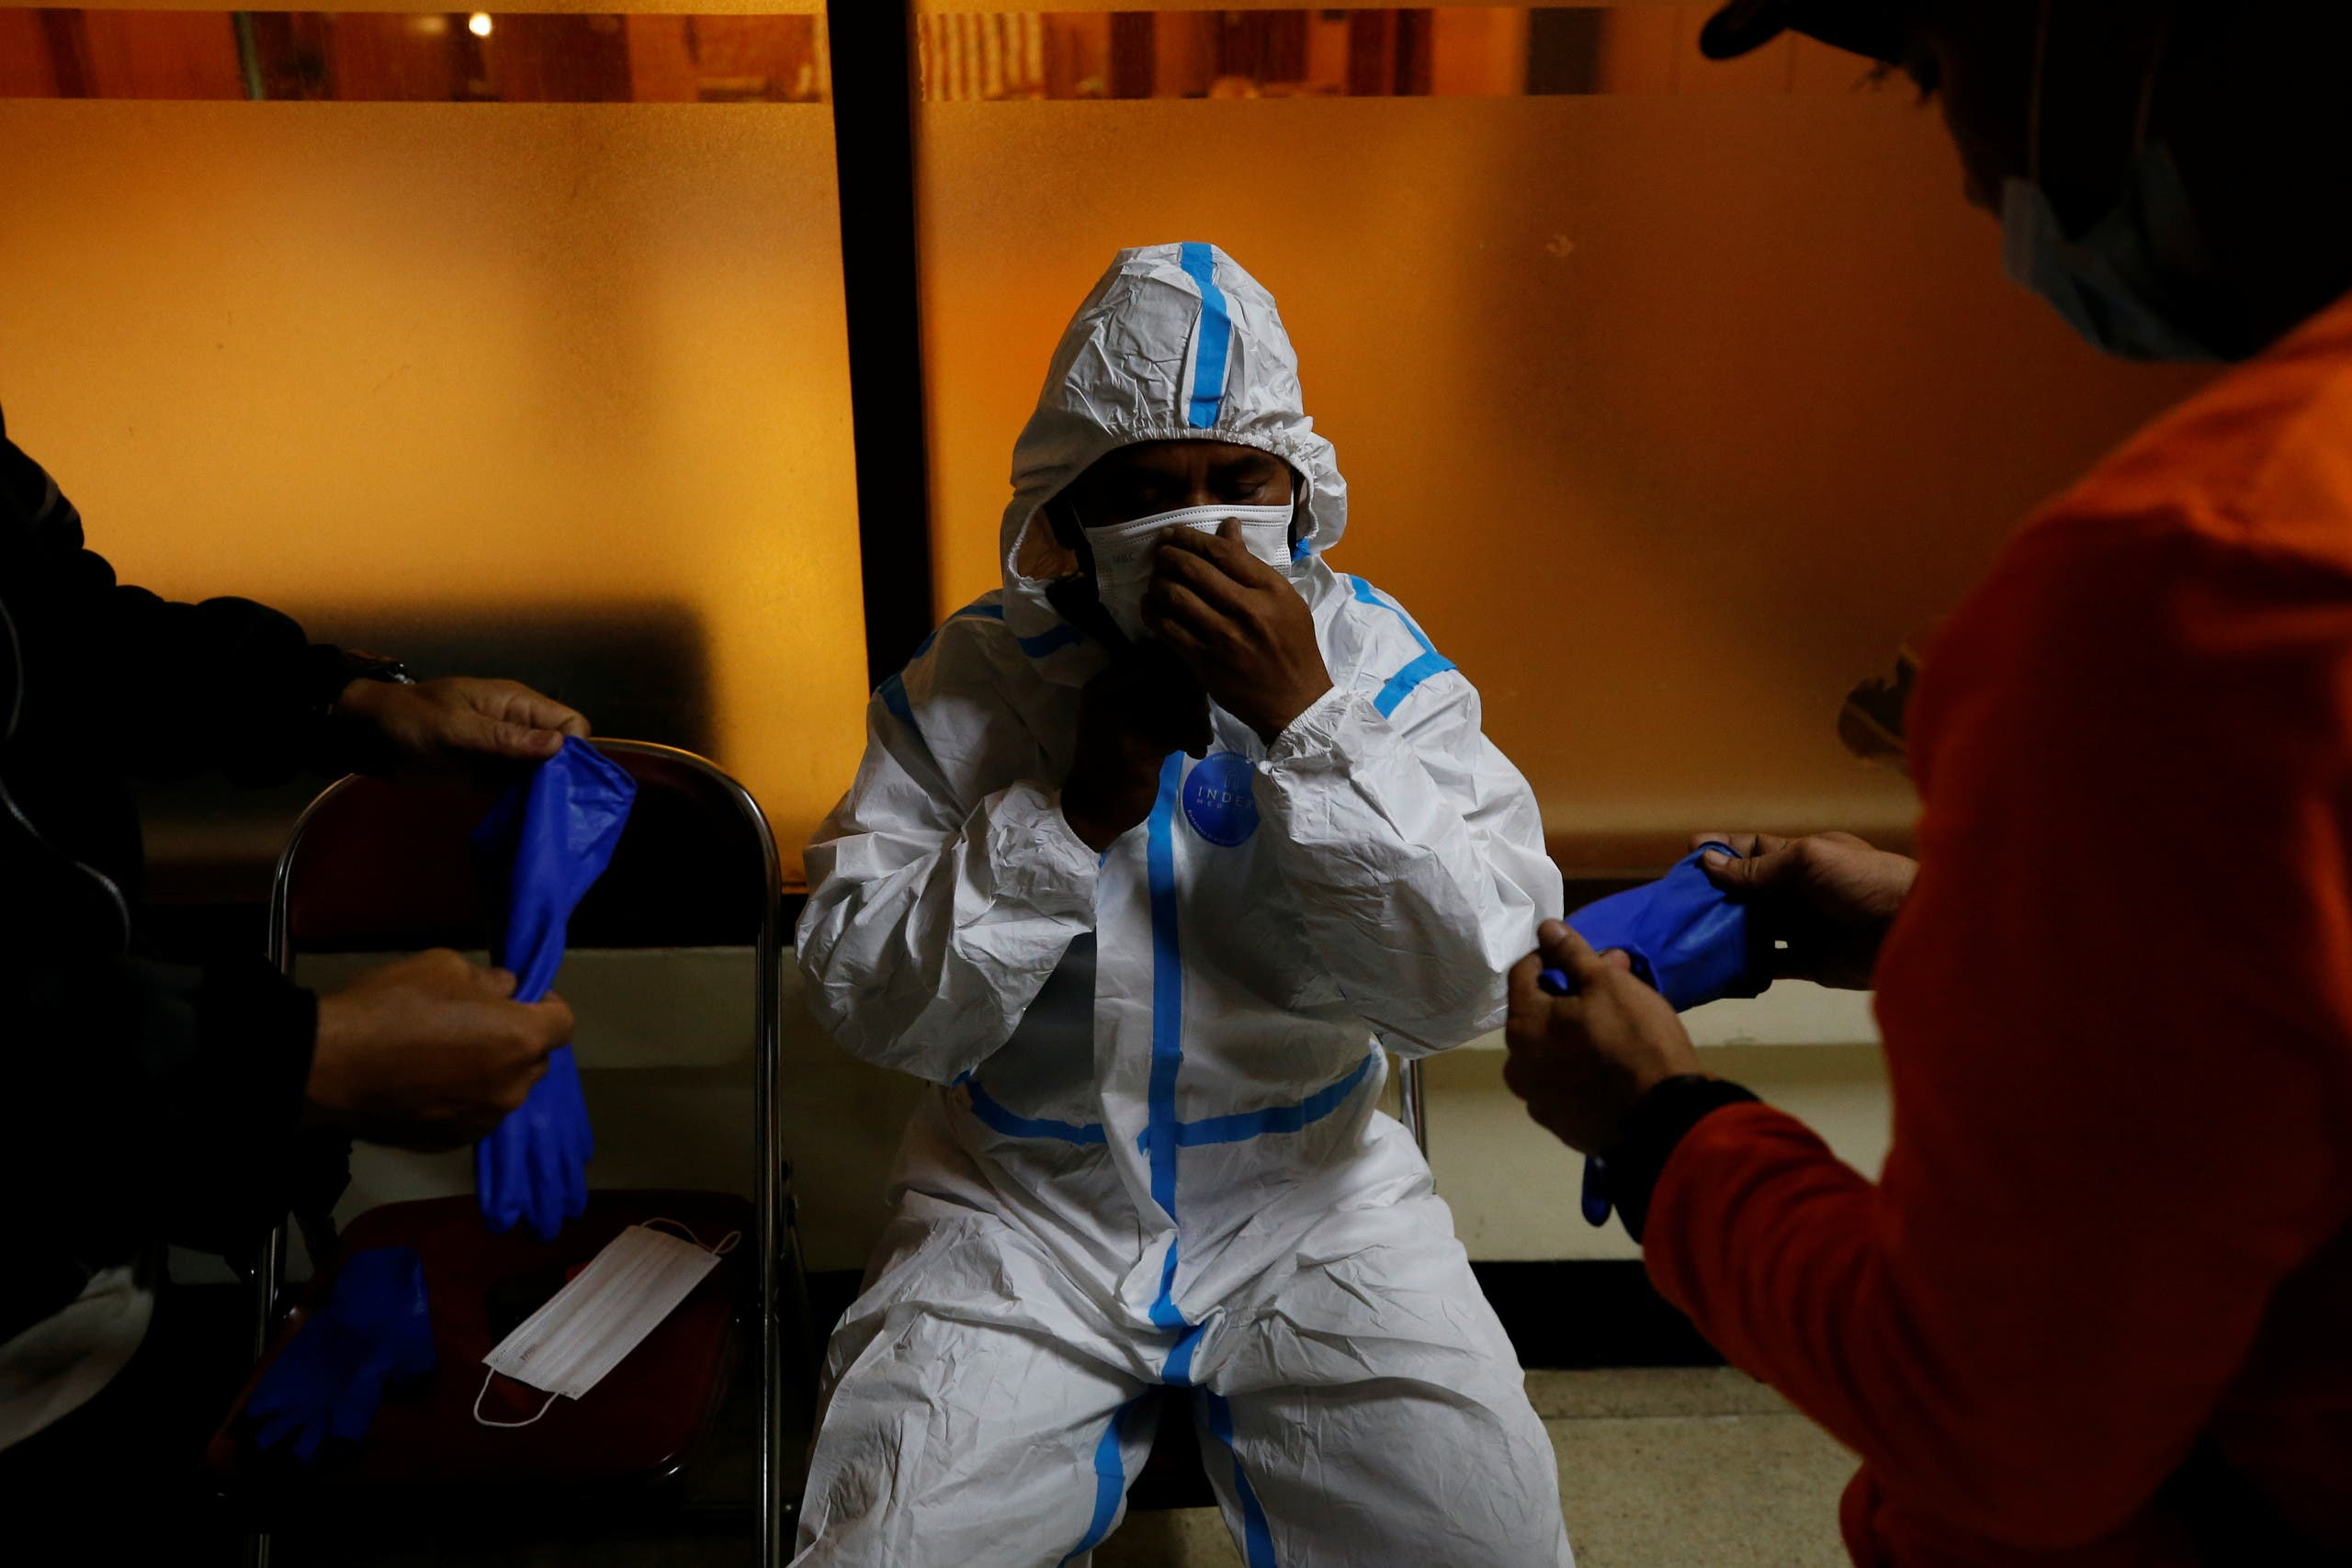 Komarudin, 48, a volunteer undertaker, prepares his personal protective equipment at the group's headquarters before collecting the body of a person who passed away due to complications related to COVID-19 whilst isolating at home in Bogor, West Java province, Indonesia, July 11, 2021. (Reuters)